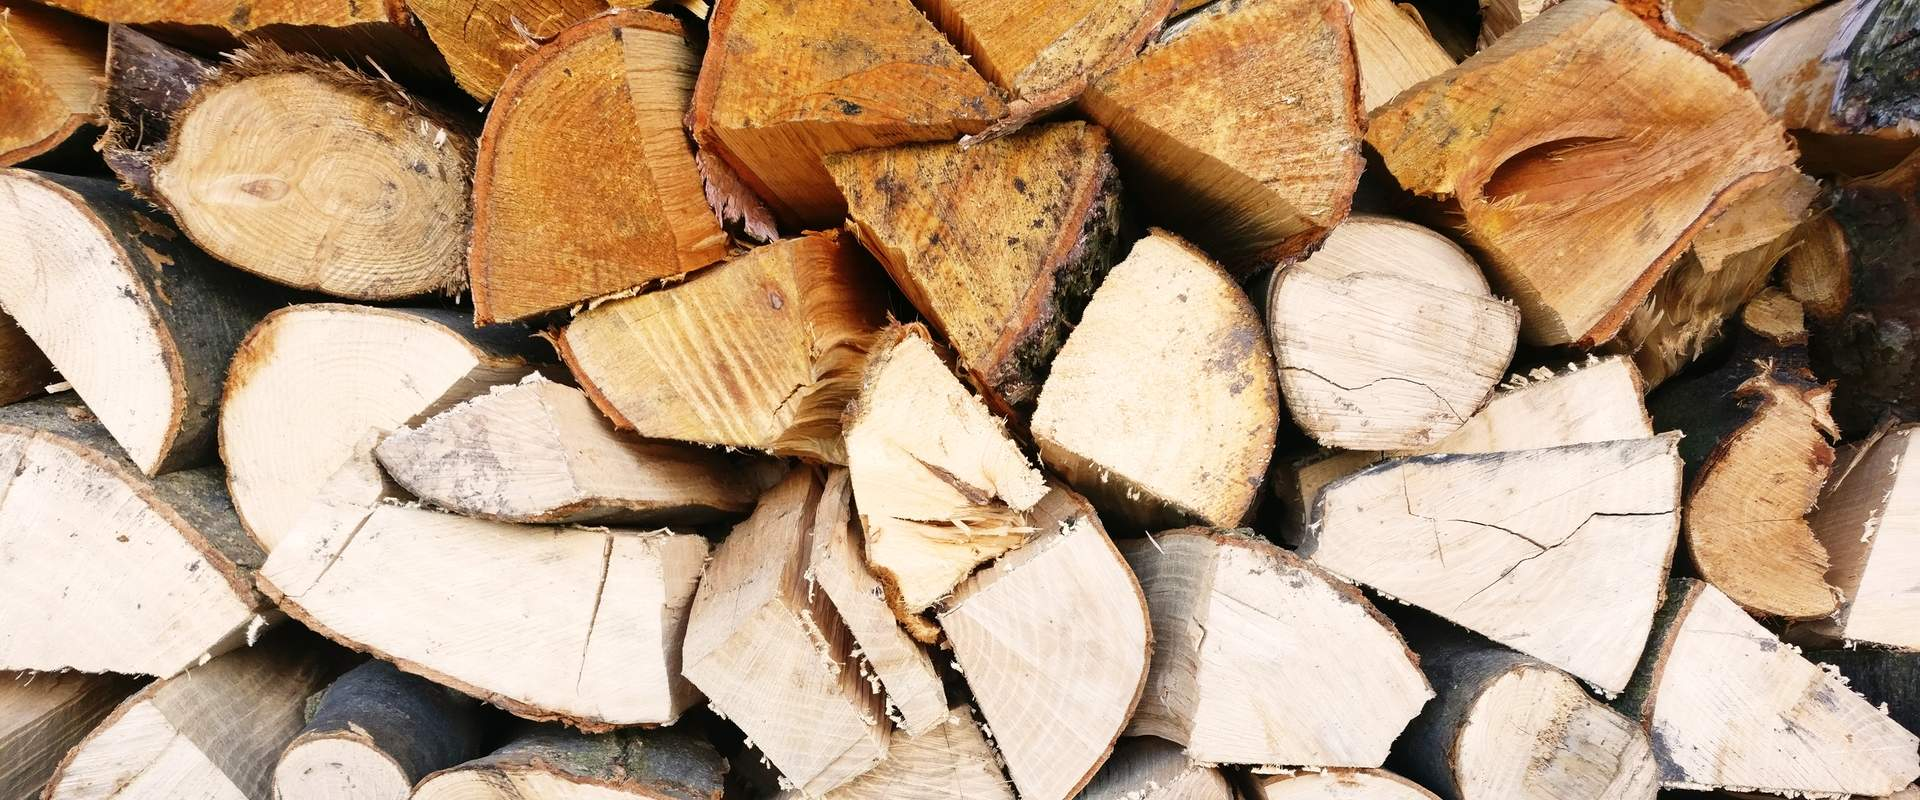 A pile of fire wood.